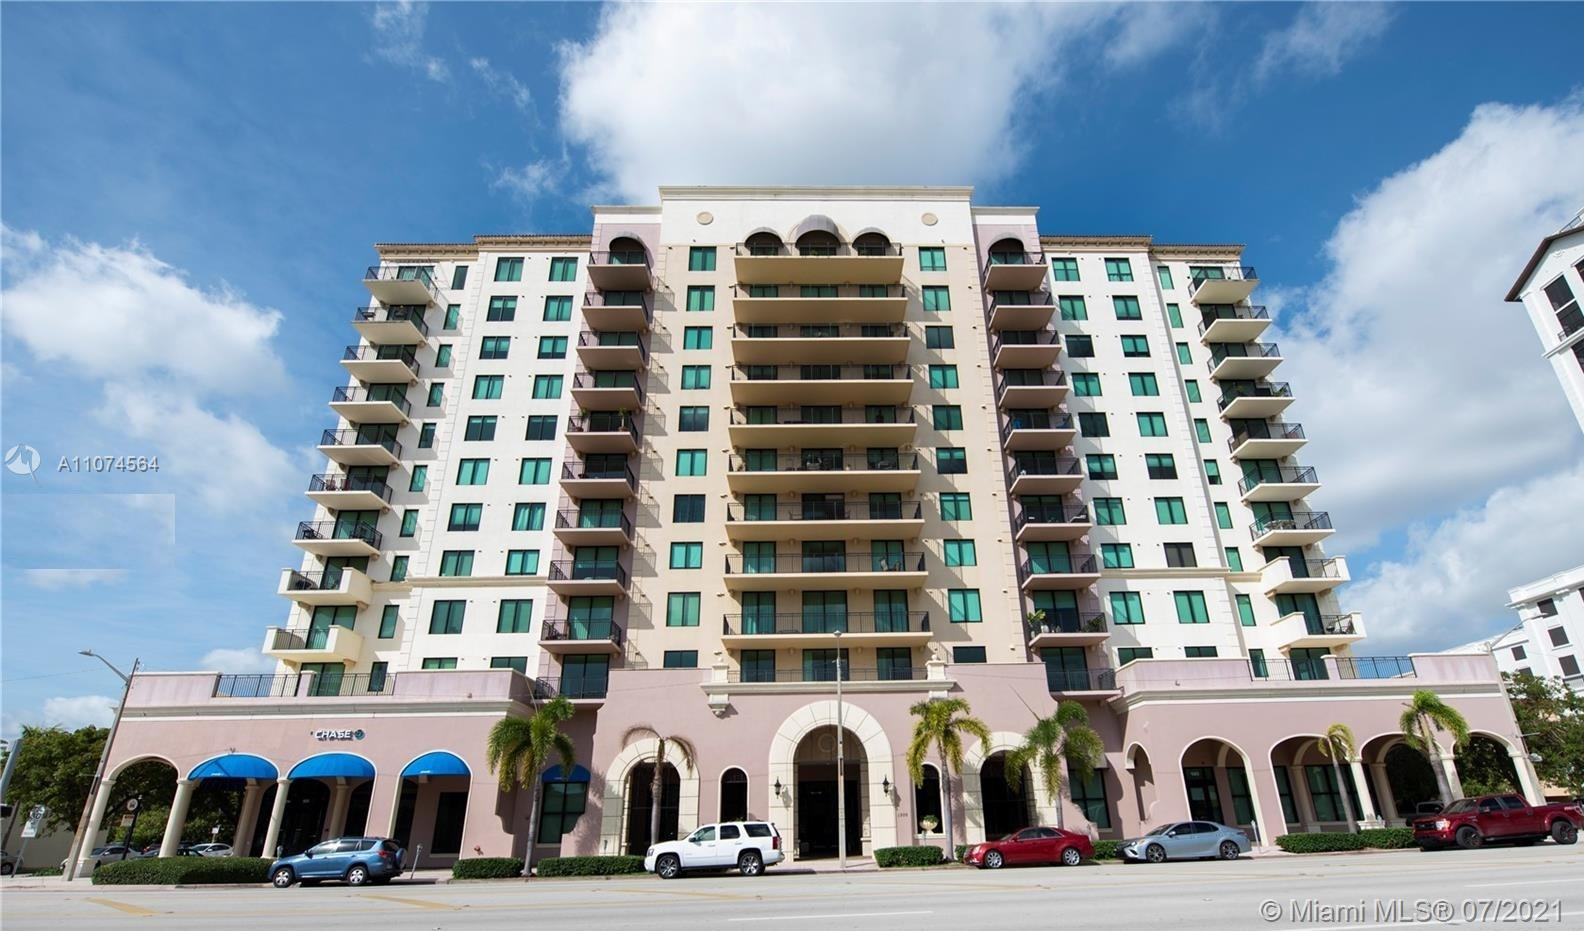 Beautiful and spacious luxury condo in the center of Coral Gables. 2B / 2 1/2 bath, walk-in closets, wood cabinets, pantry, tile and laminate flooring. 2 parking spaces. Building has amenities including pool and gym. Large balcony with wonderful views. Excellent location near to banks, restaurants, shopping and schools. Not pets